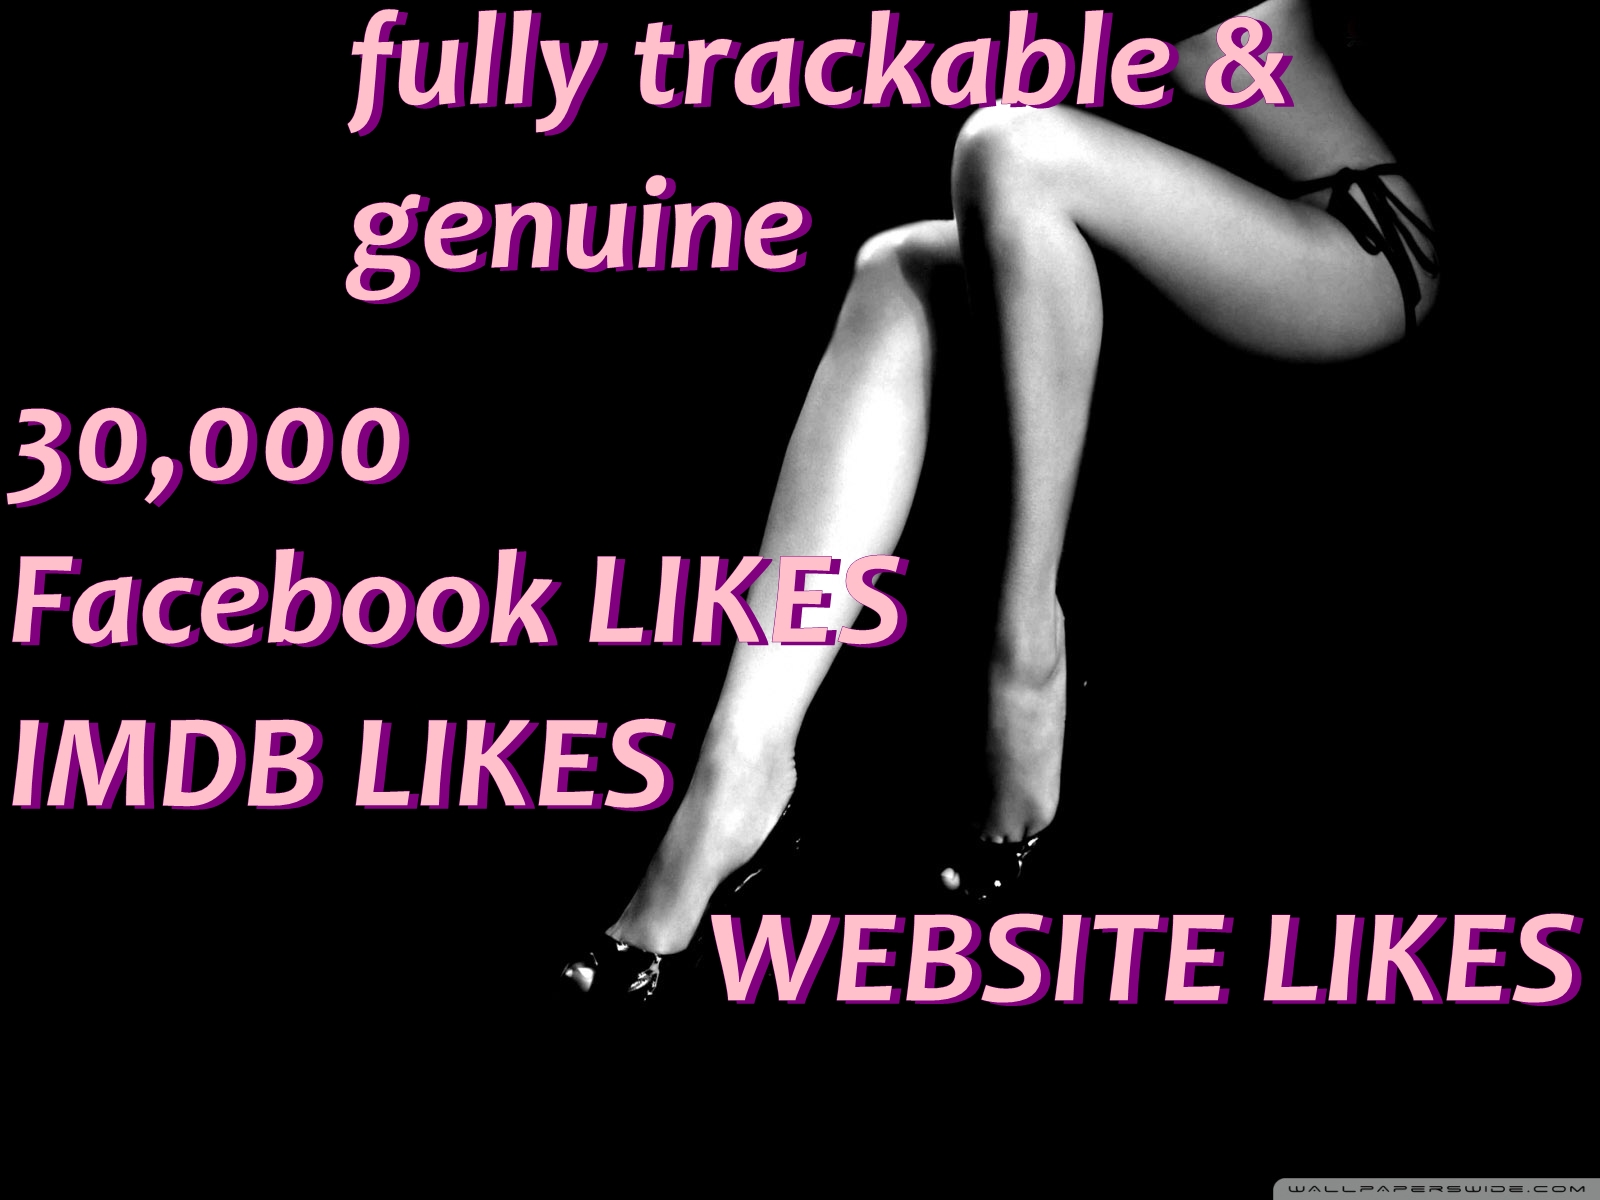 give more than 30000 imdb fabebook and wesite likes